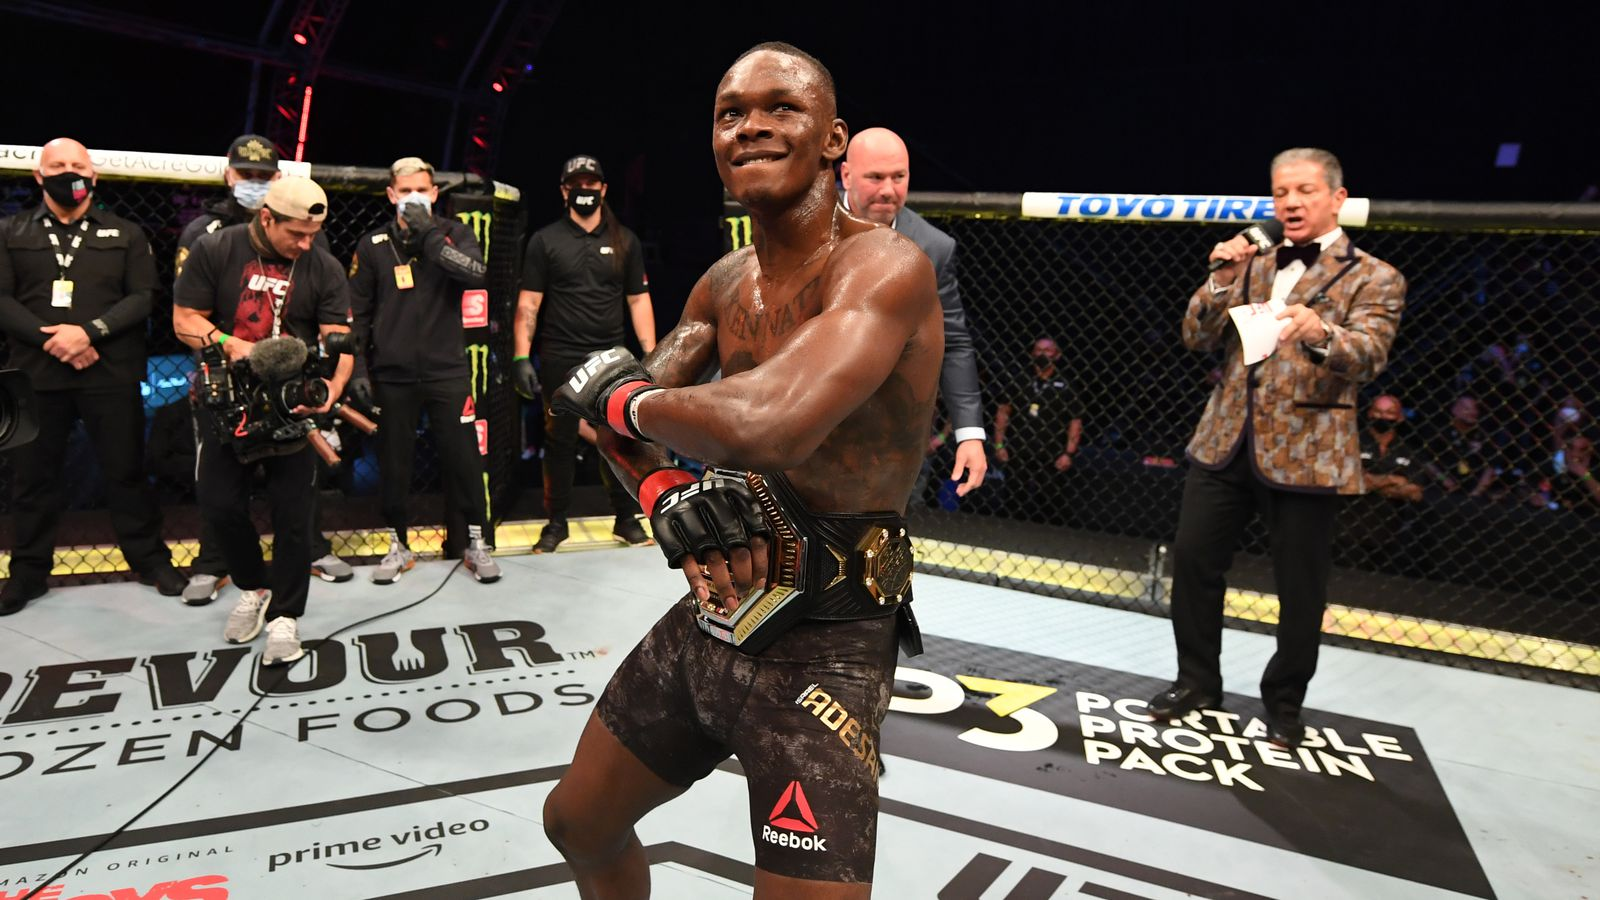 UFC 259's Israel Adesanya pushes back target date for Jon Jones superfight to Dec. 2021 - MMA Mania